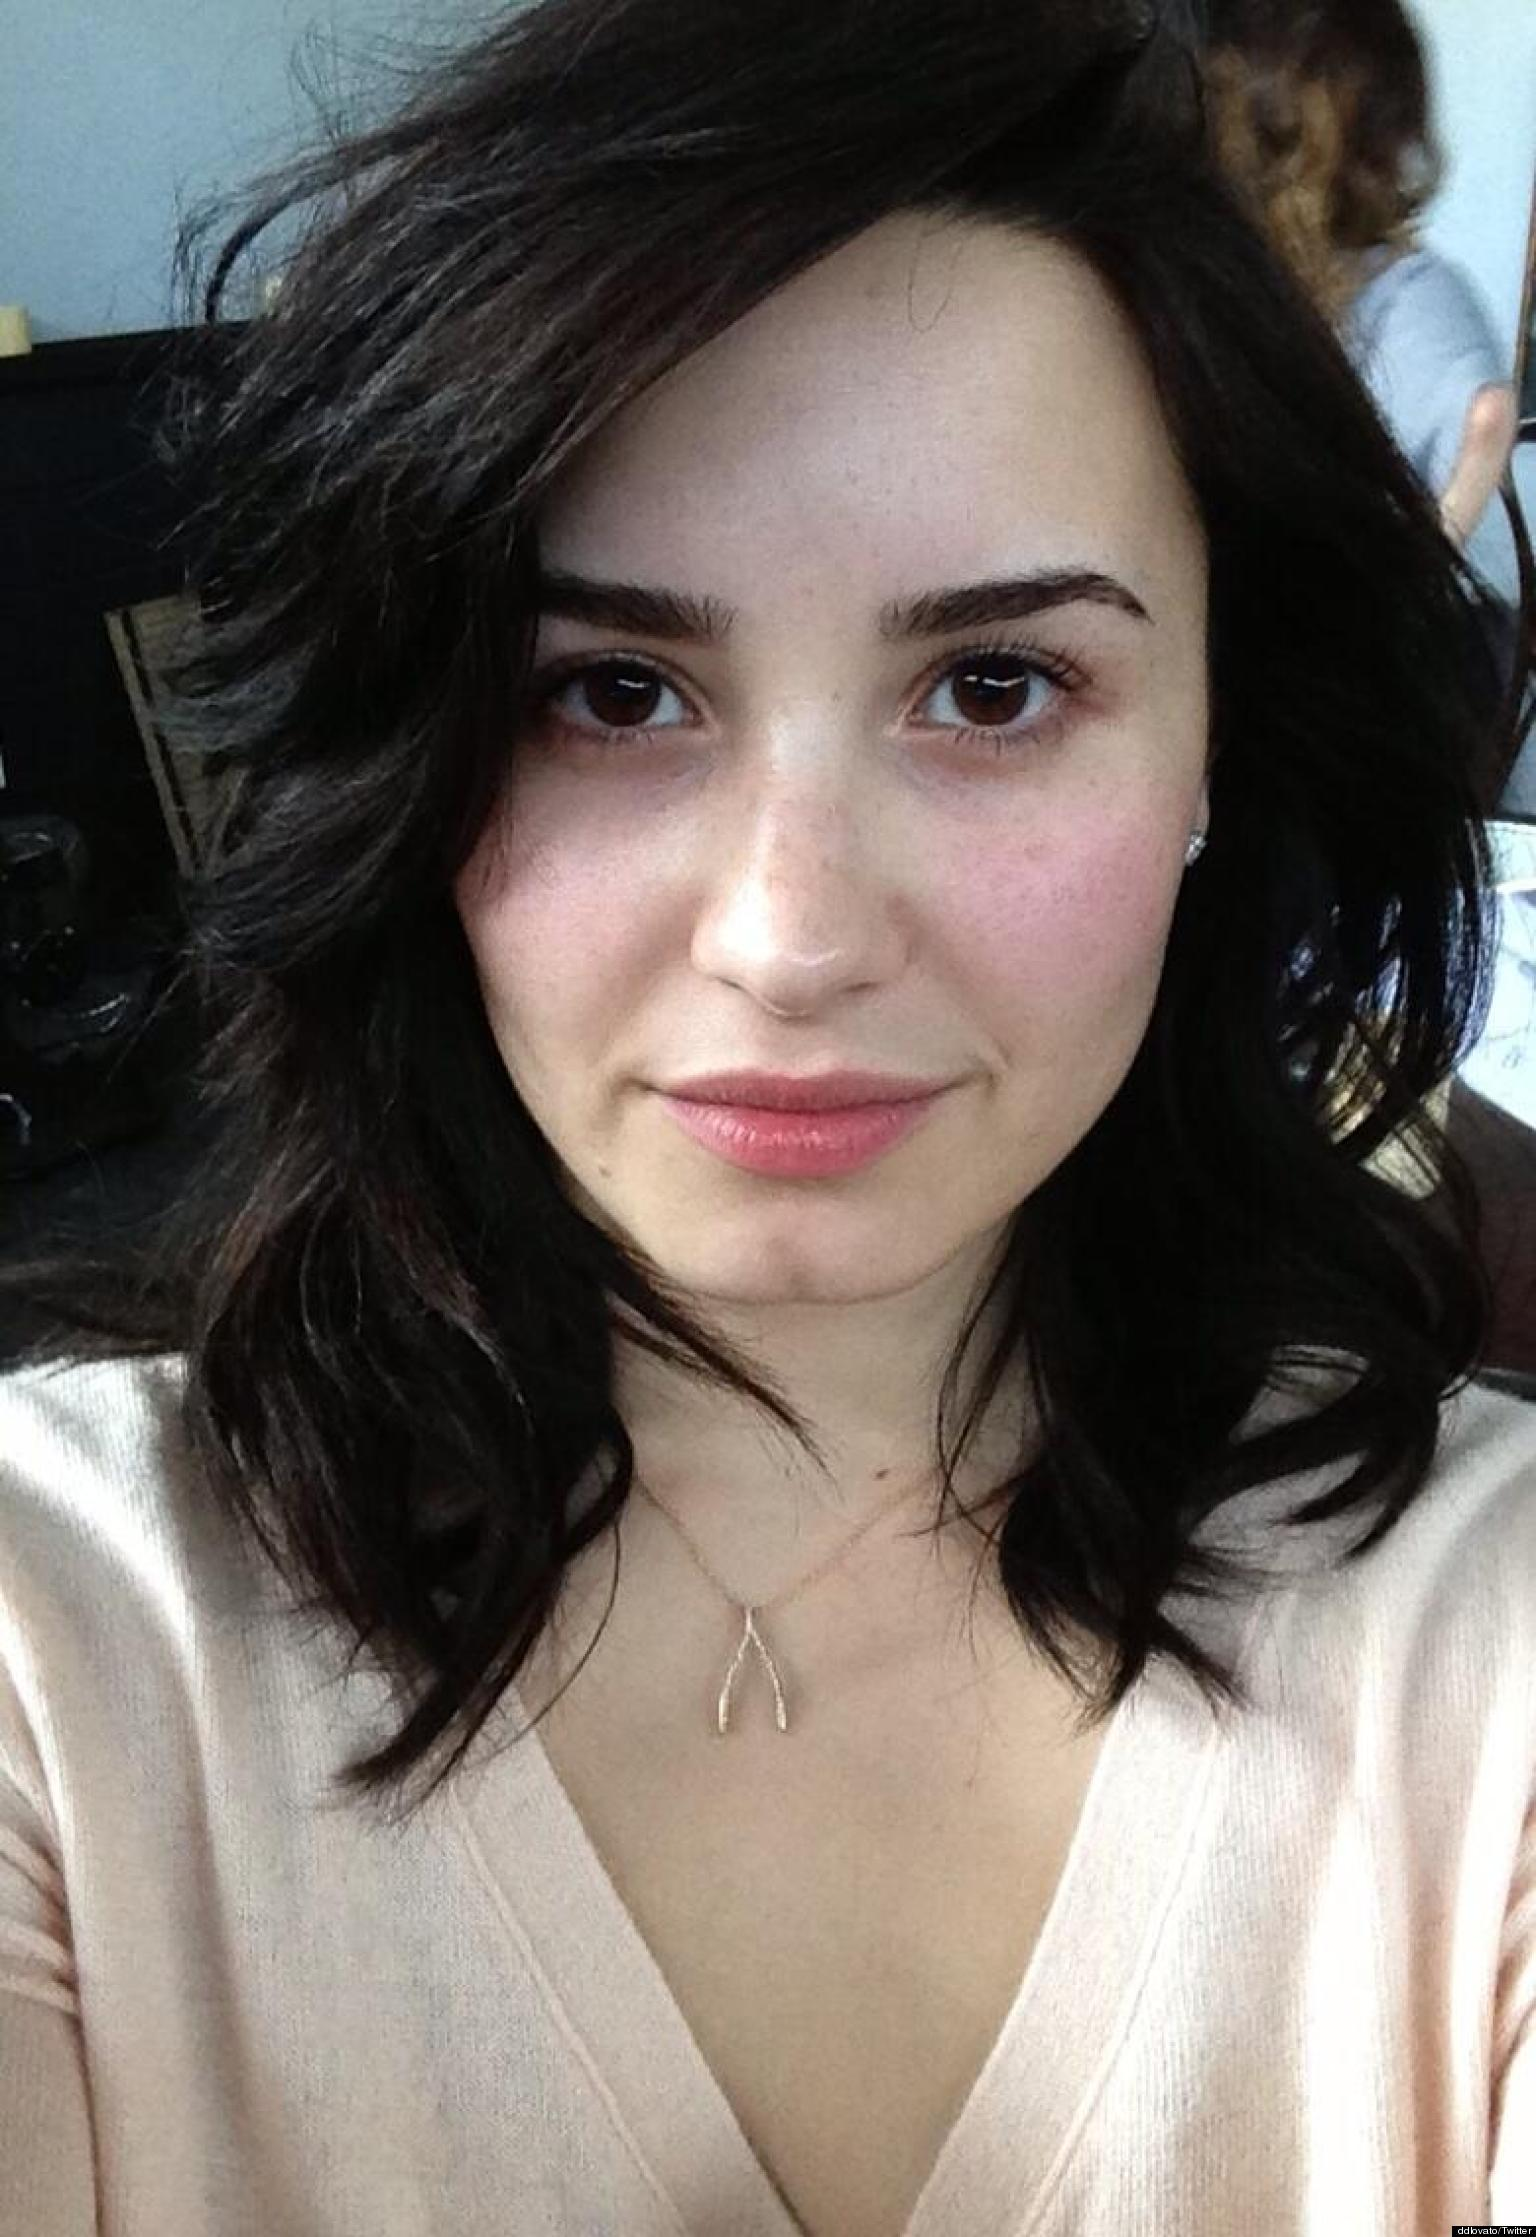 Demi Lovato No Makeup: Singer Tweets Fans To 'Stop Using